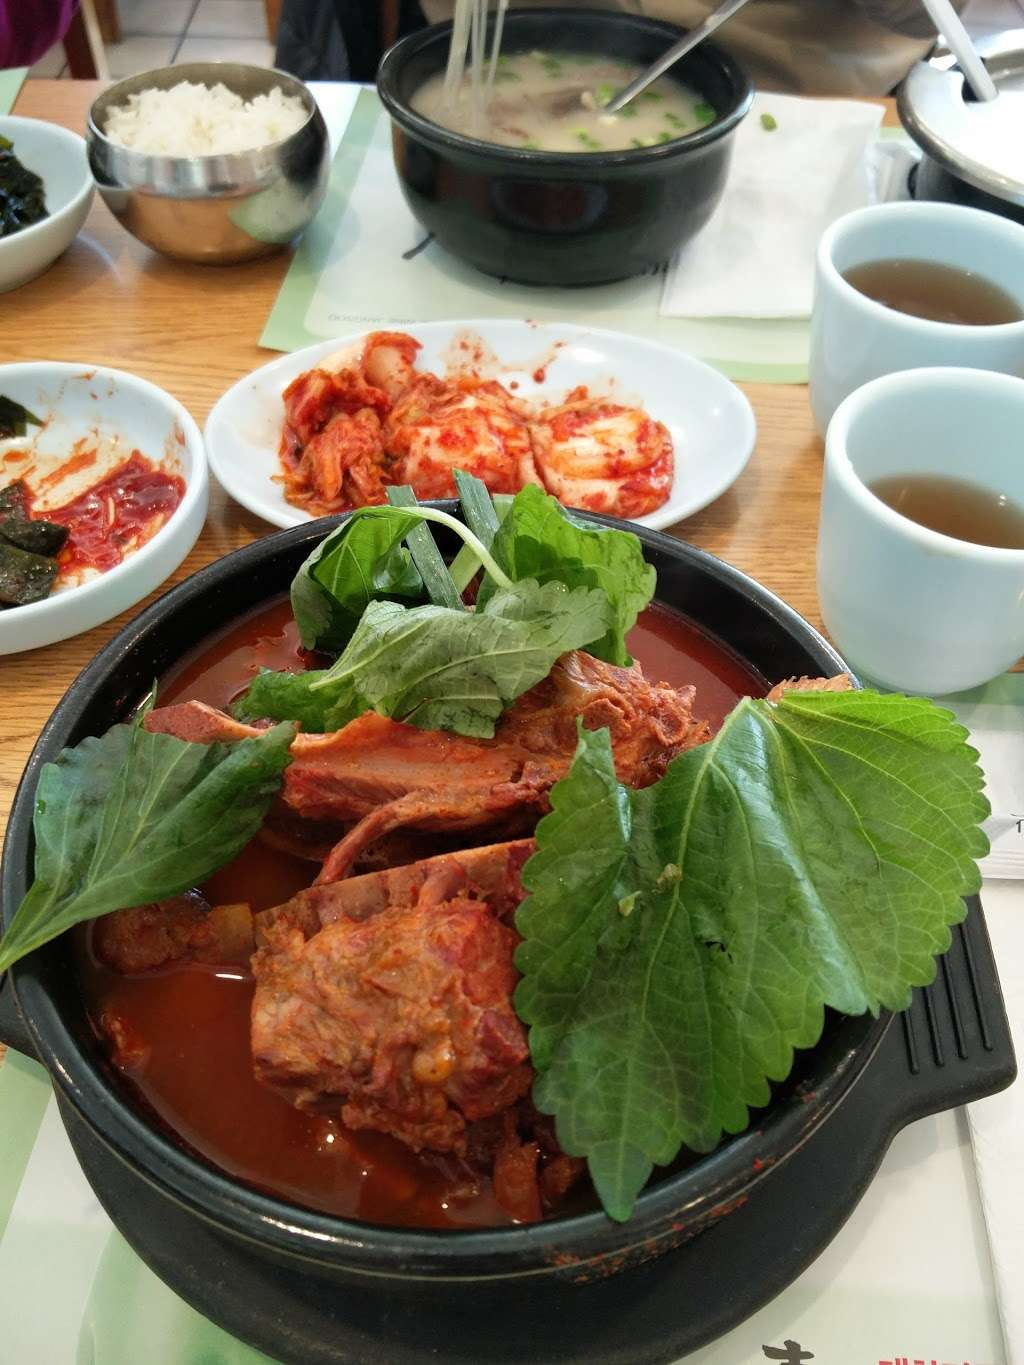 Hanuri Restaurant 한우리 식당 - restaurant  | Photo 10 of 10 | Address: 12942 Galway St suite b, Garden Grove, CA 92841, USA | Phone: (714) 534-9494